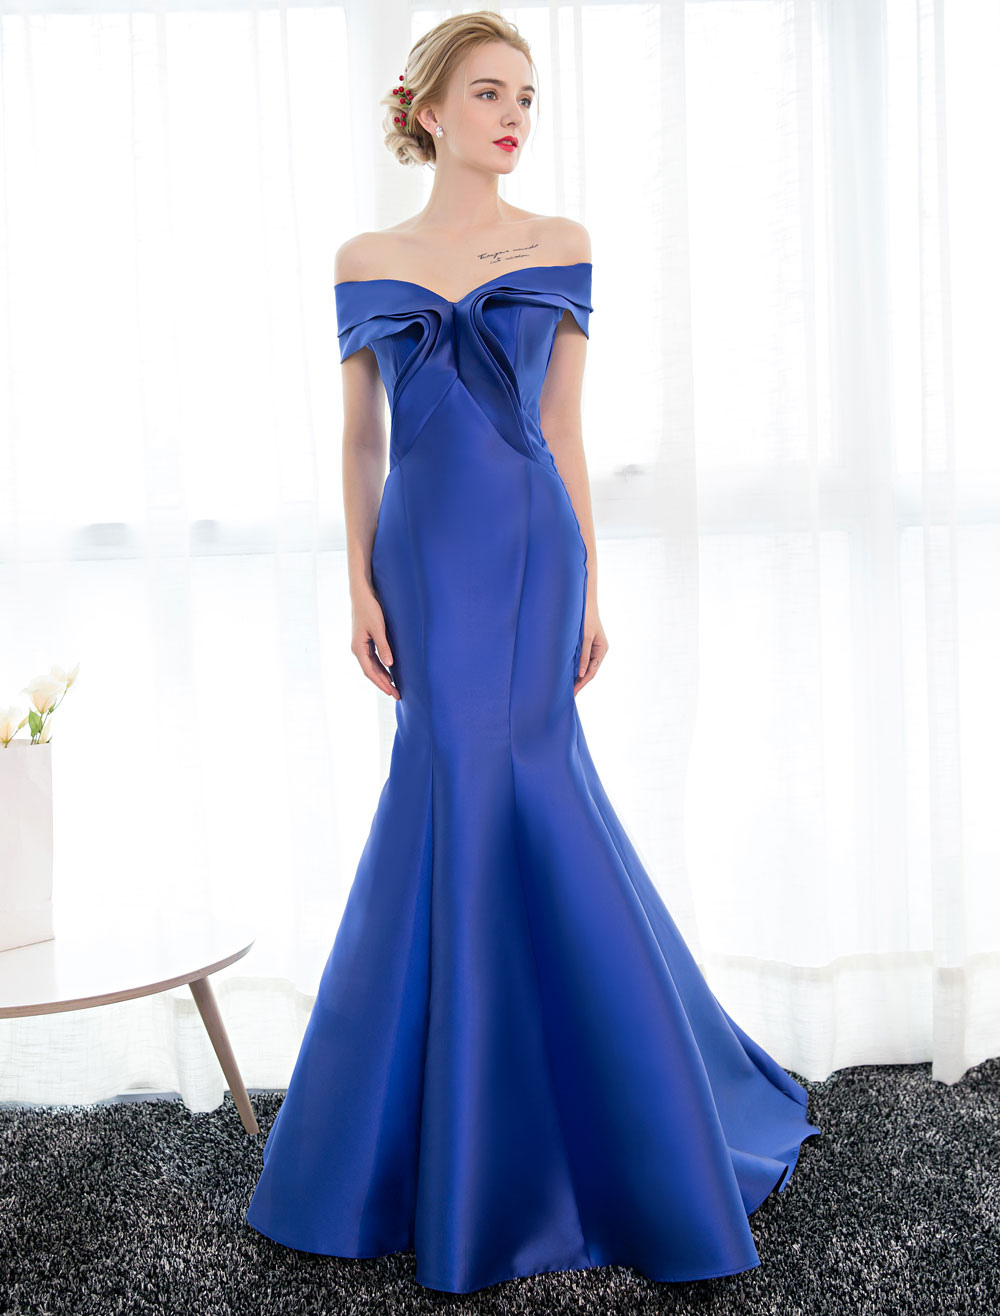 Evening Dresses Satin Royal Blue Evening Gown Off The Shoulder Mermaid Formal Dress With Train